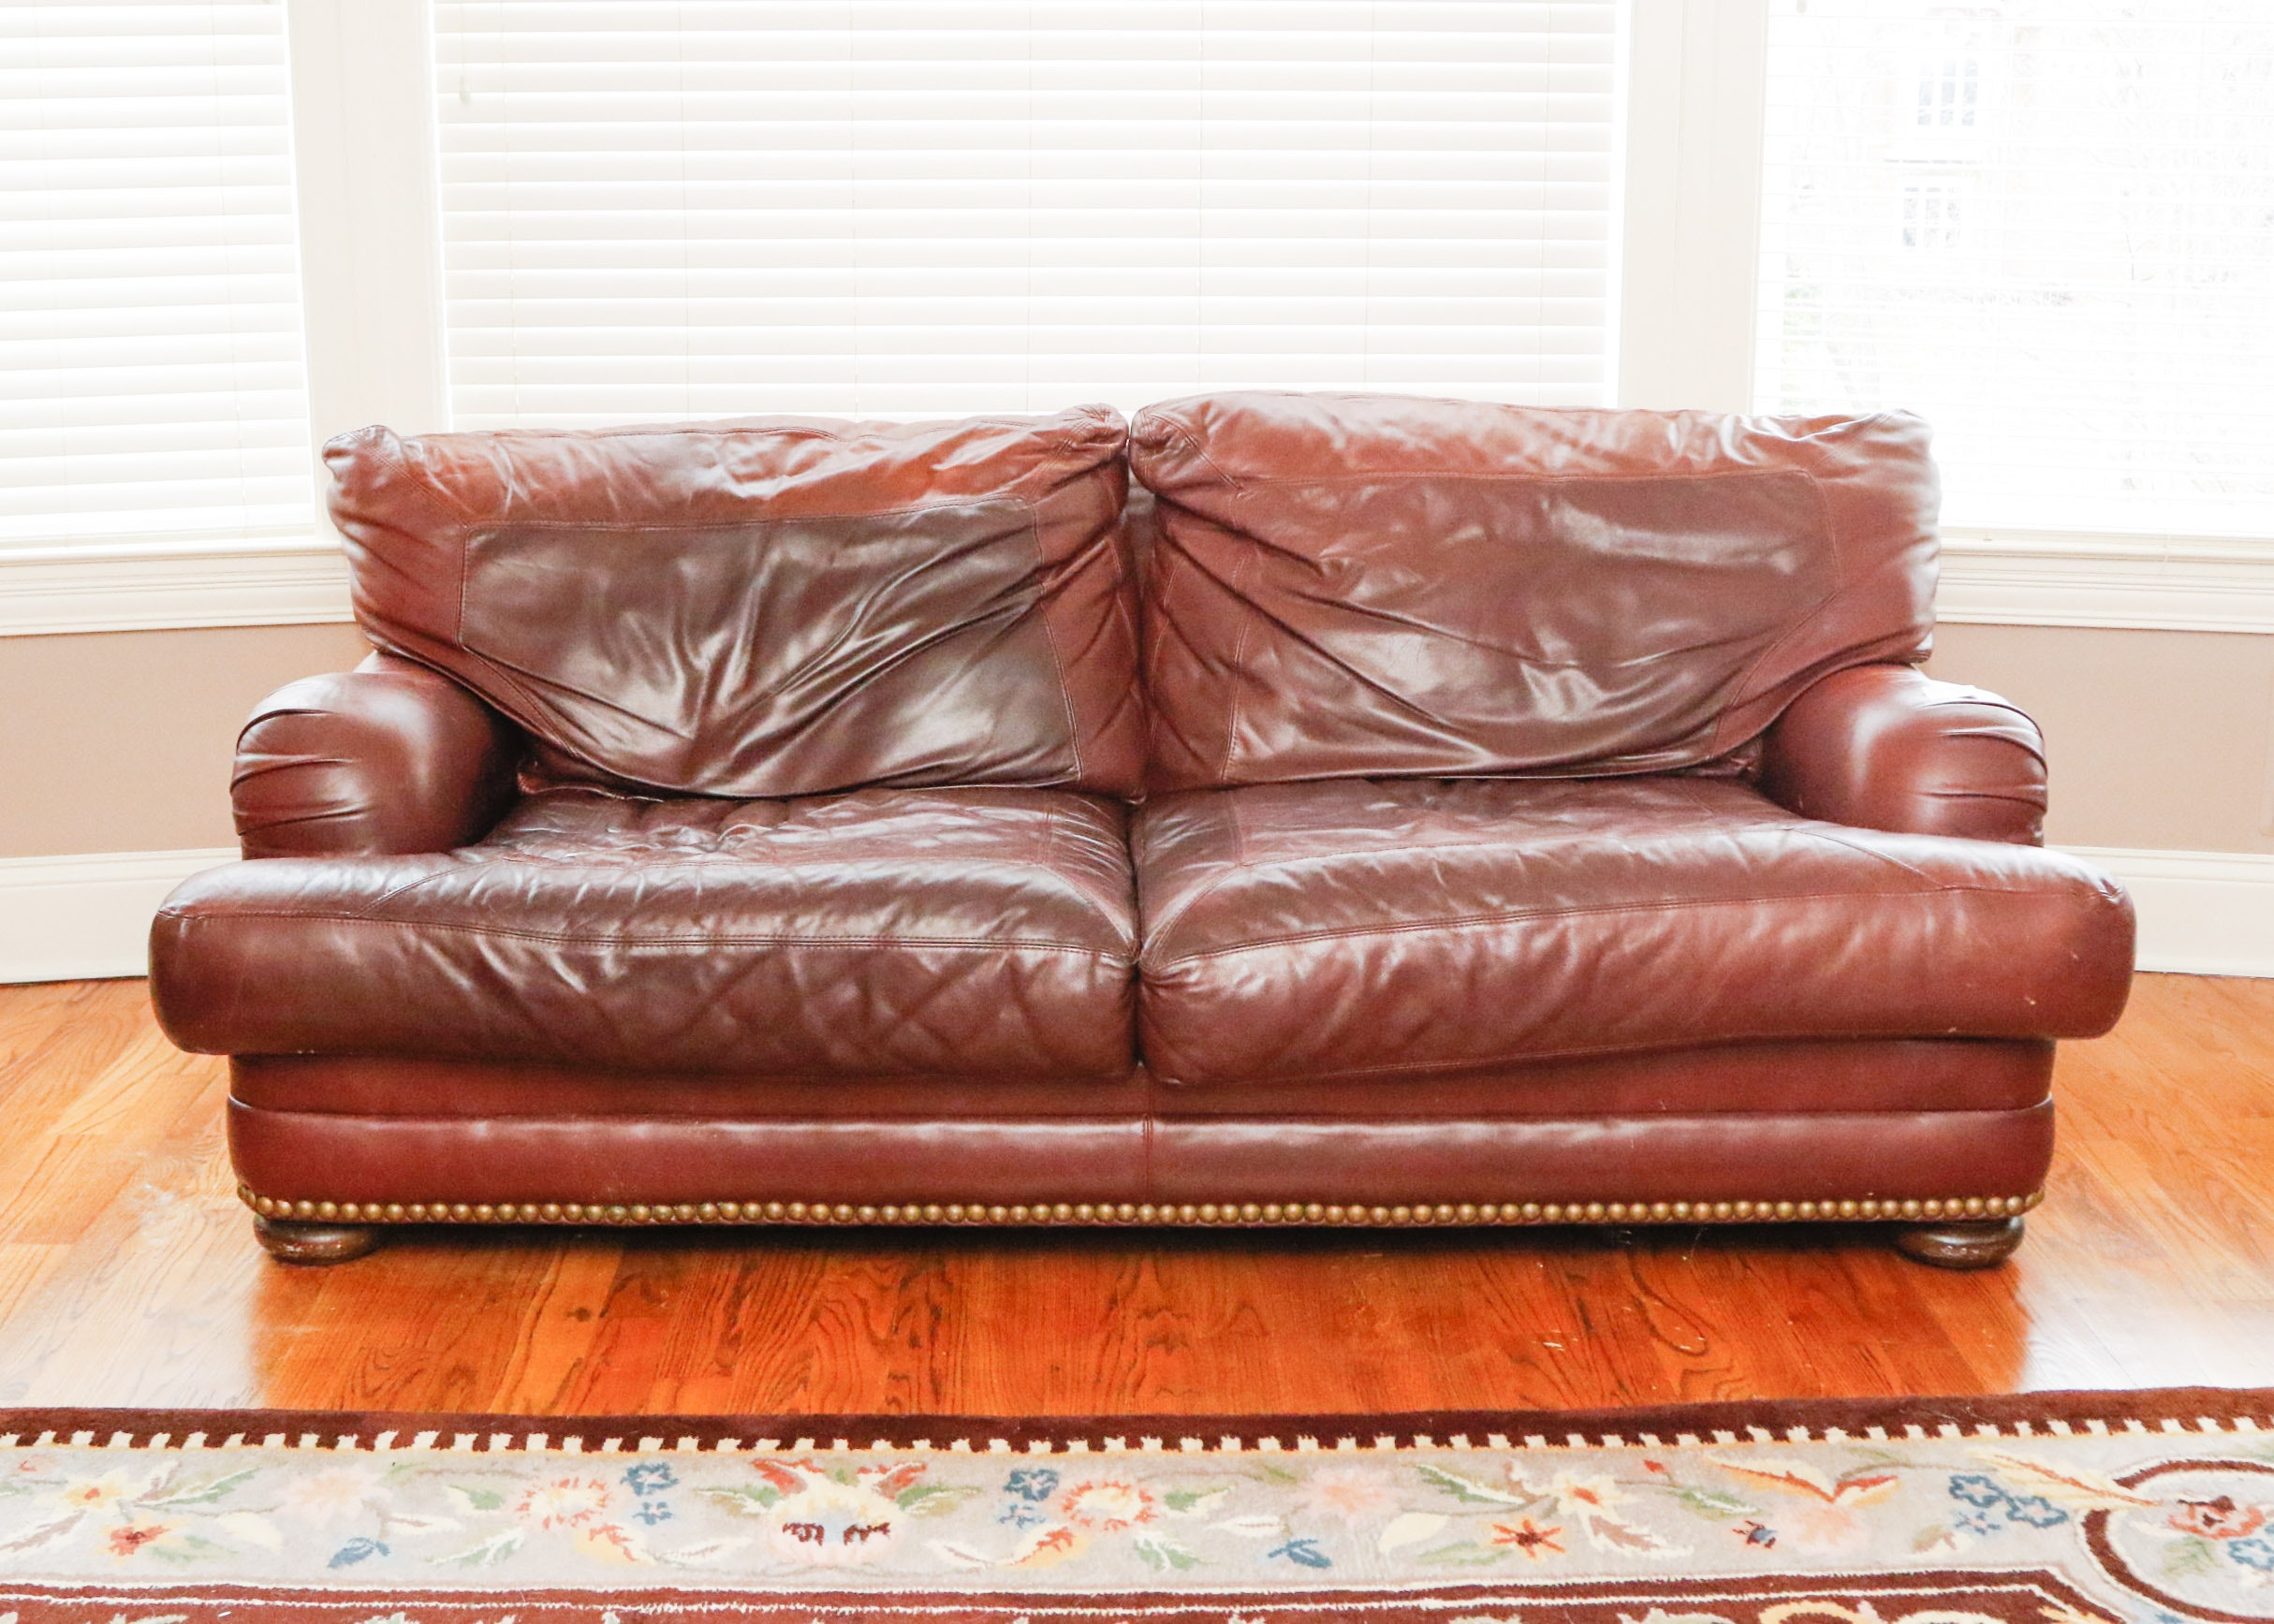 Inspirational Sealy Leather Upholstered Sofa For Your House - Popular Sealy Leather sofa Unique